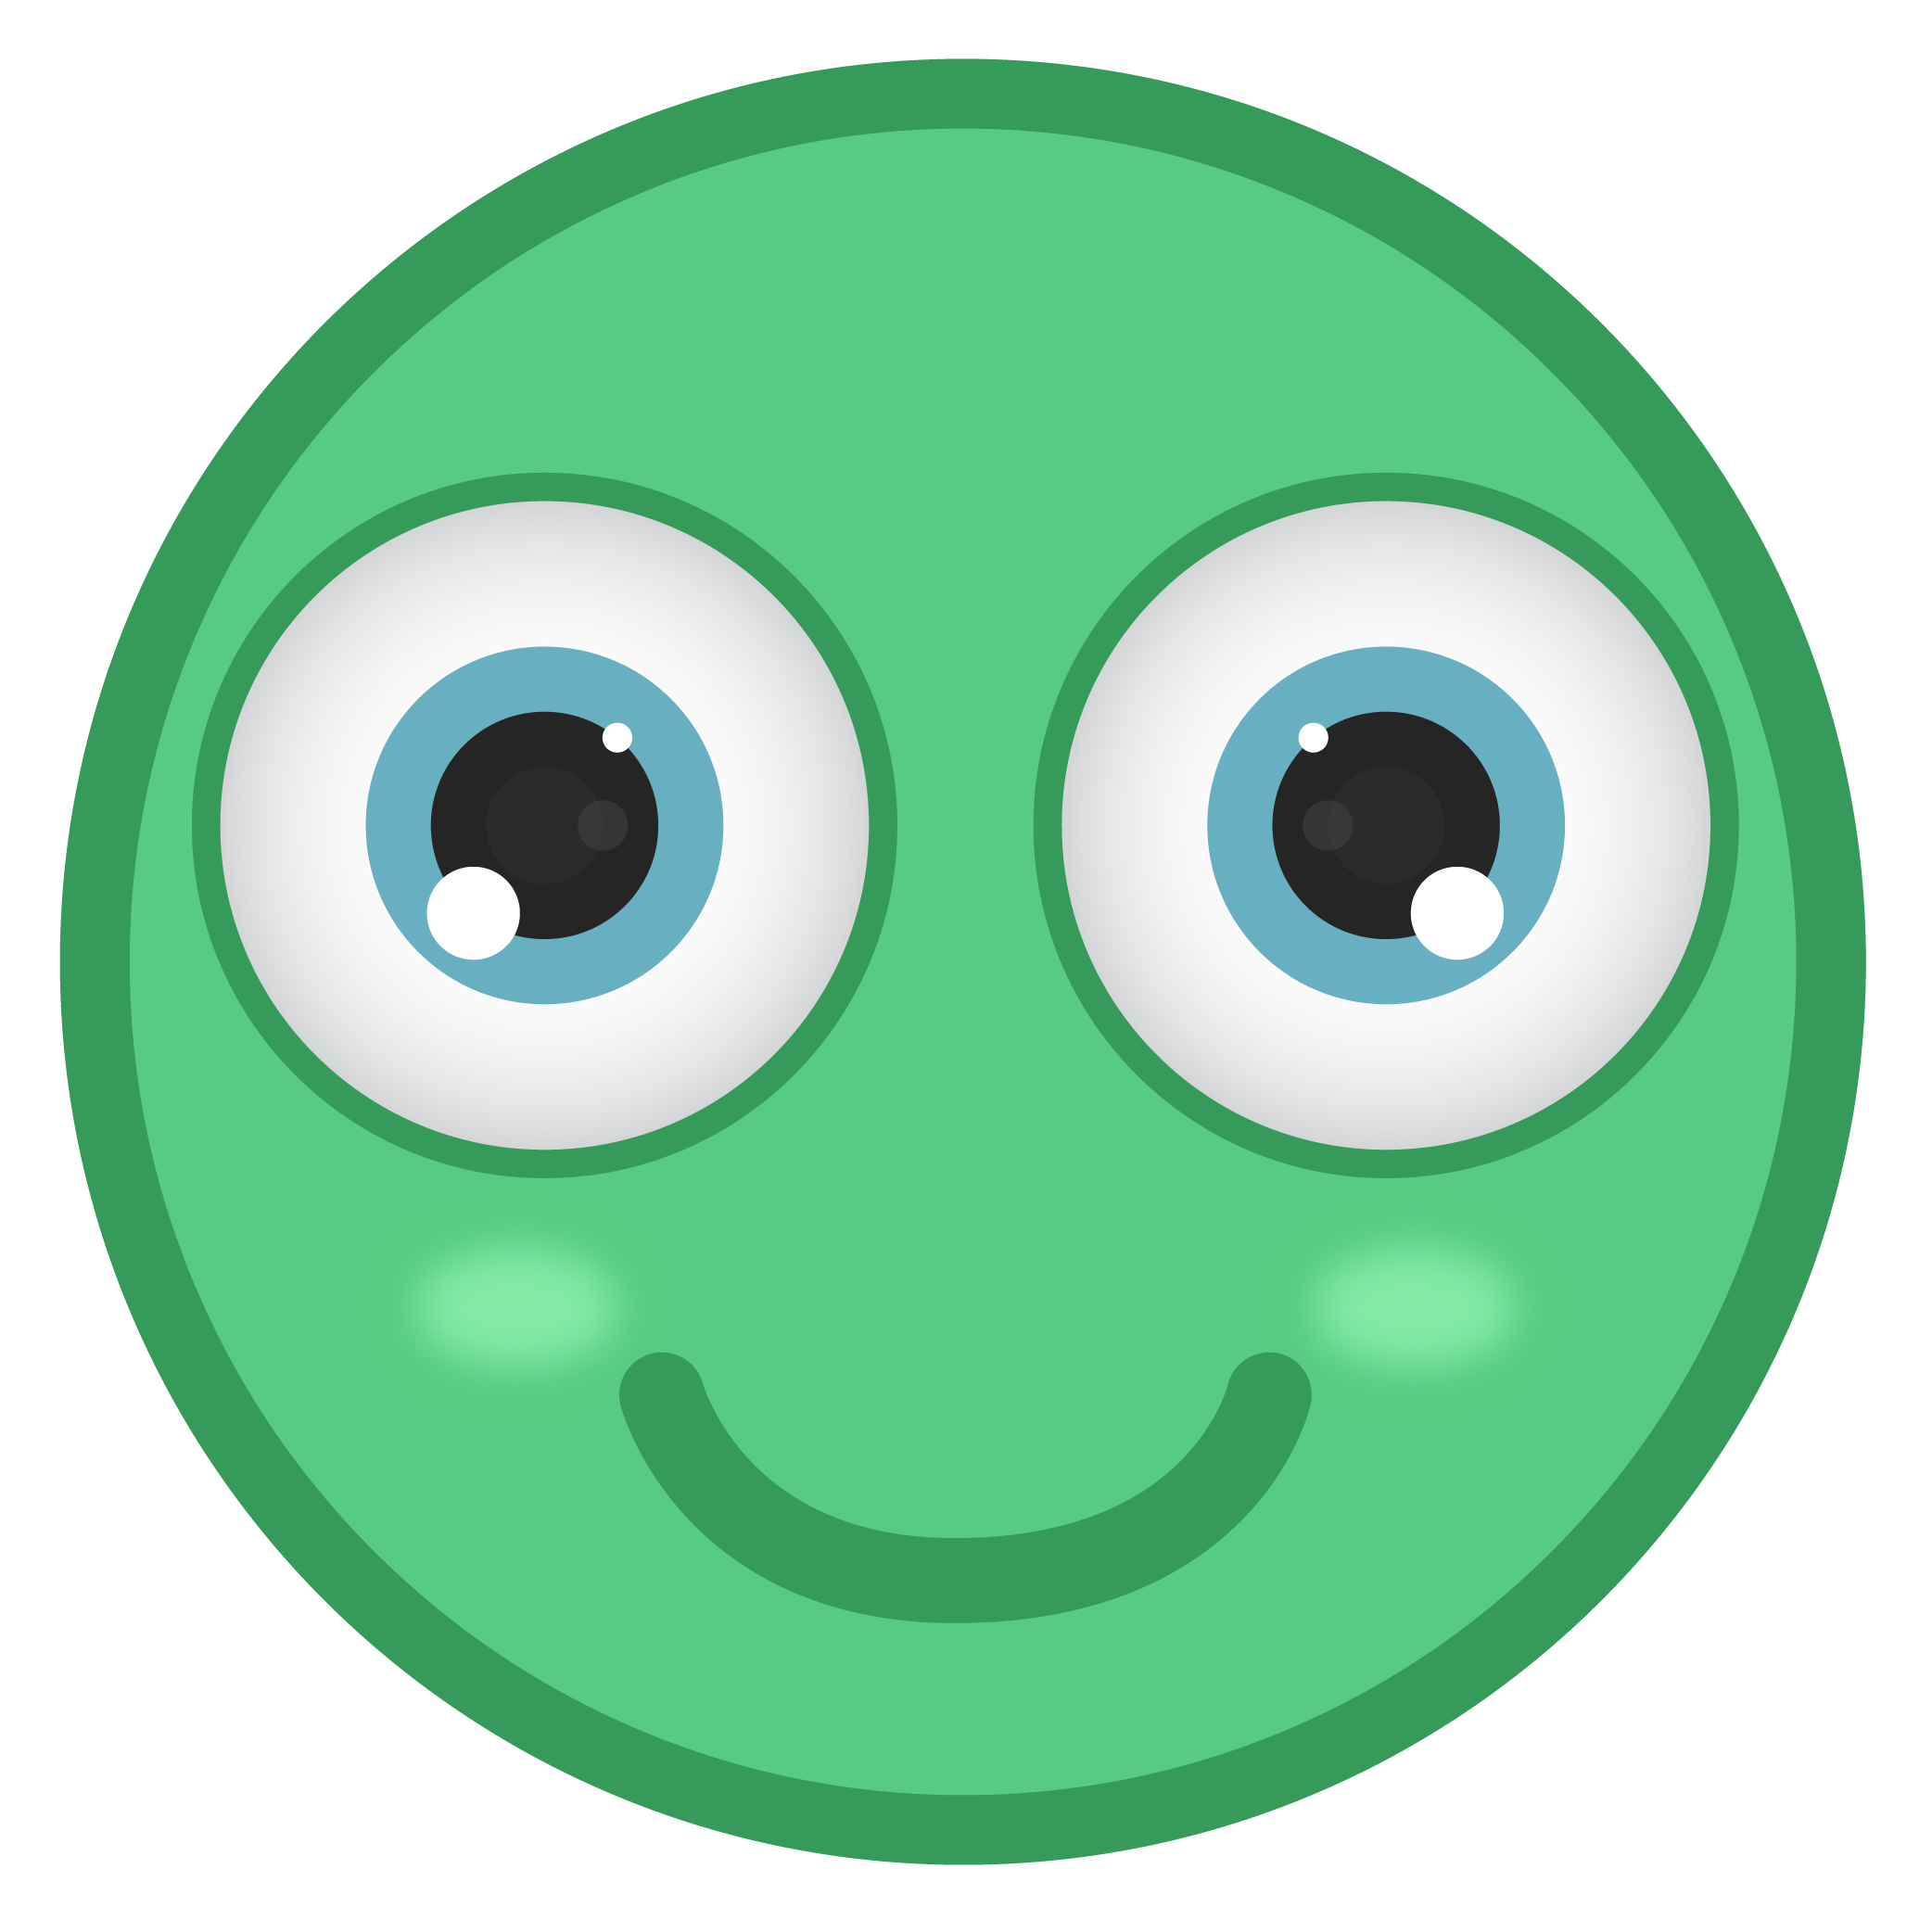 image library stock Yes clipart smilie face. Grab your free survey